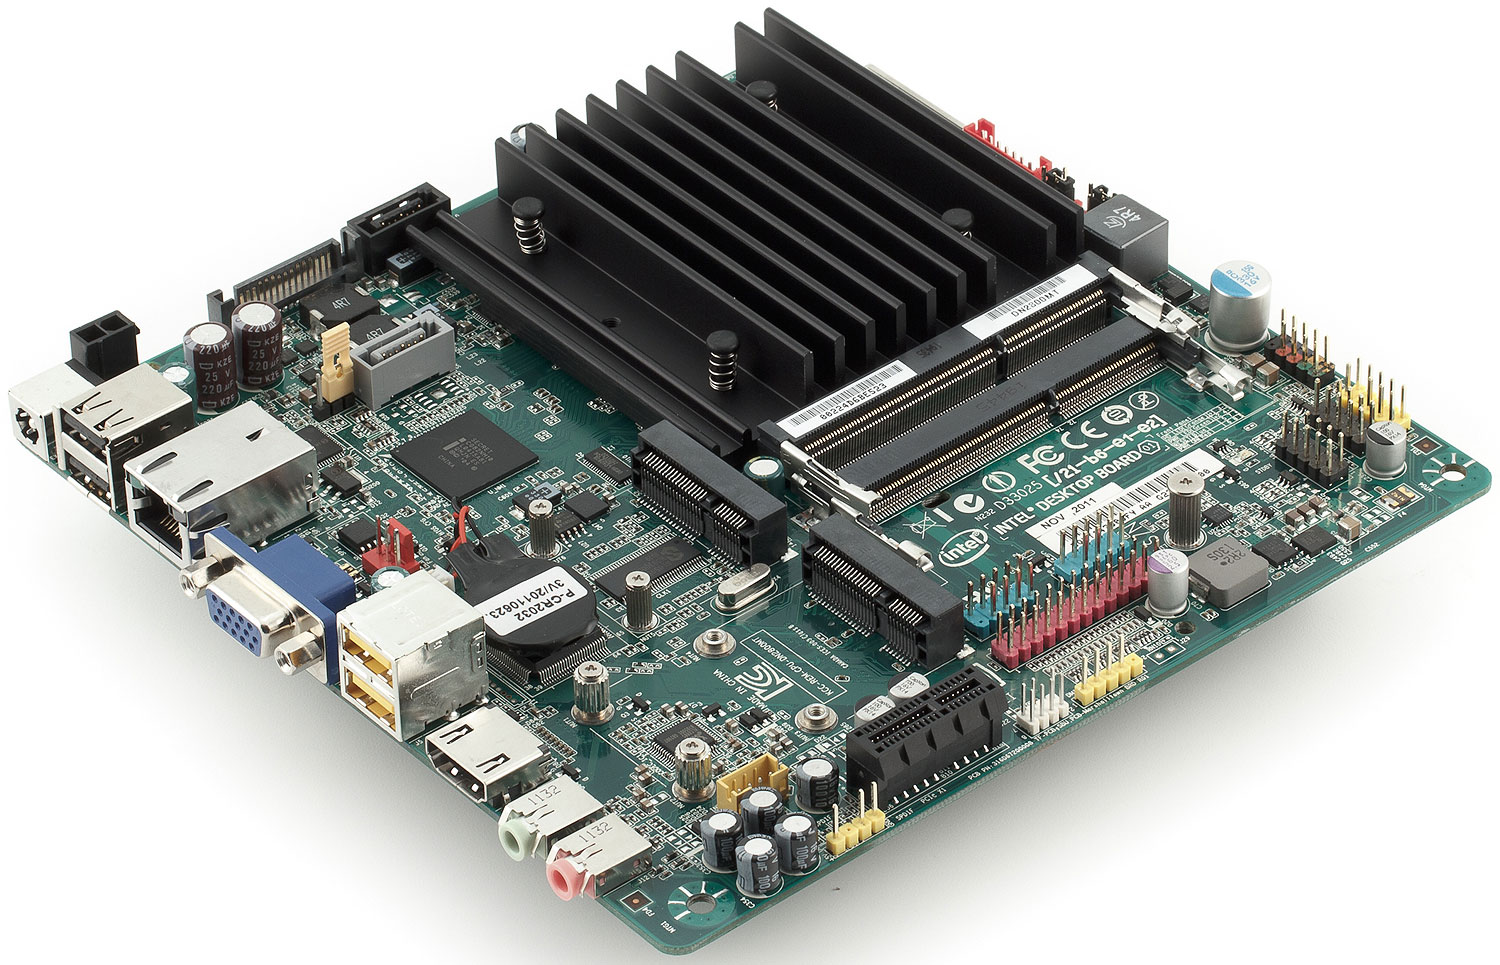 Intel BLKDN2800MTE / DN2800MTE Chipset-NM10 Dual Core DDR3-1066MHz Mini ITX Motherboard